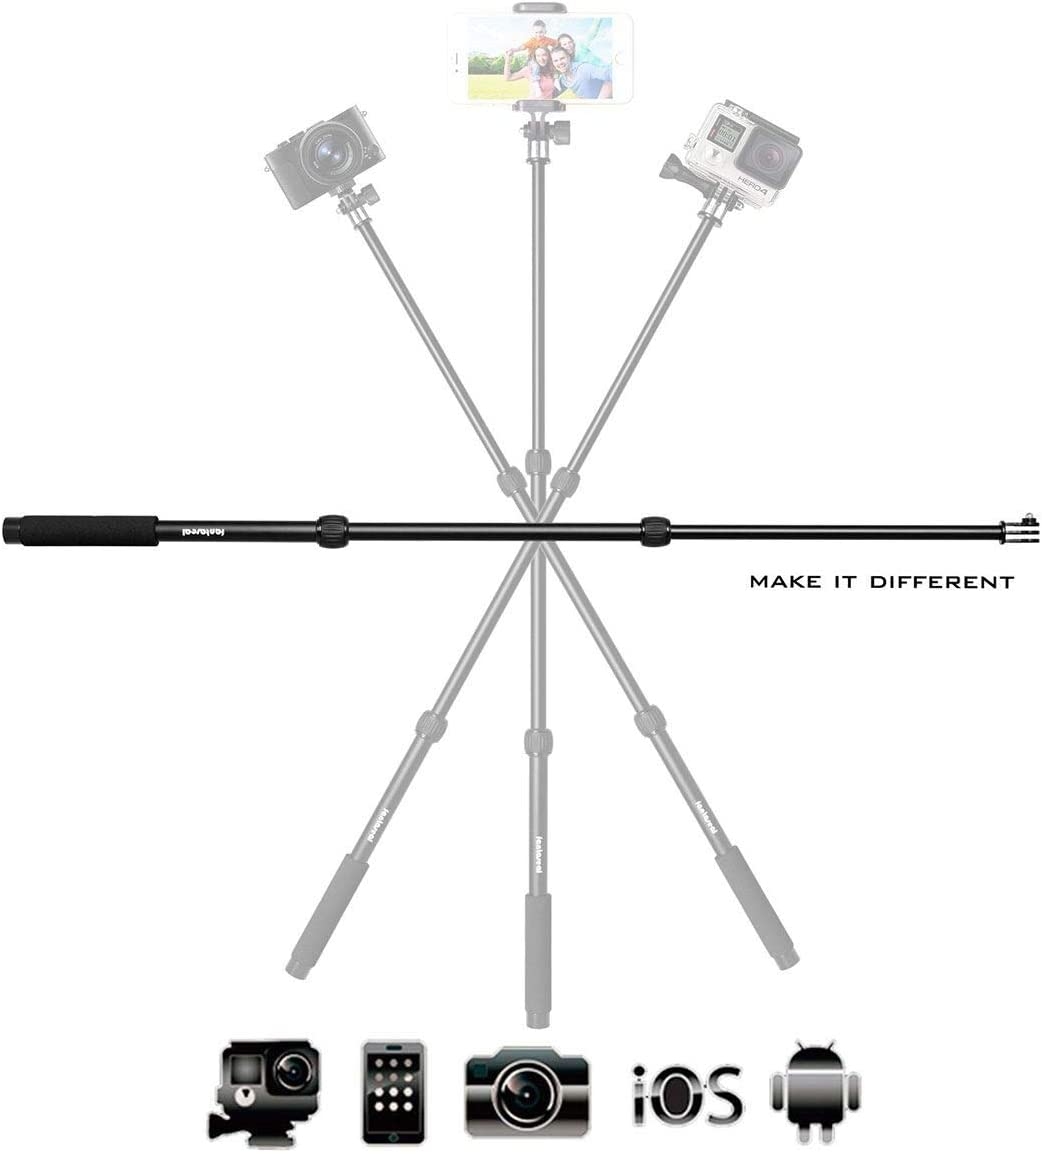 3in1 Aluminum Alloy X-Sports Selfie Stick Action Camera Smartphone Monopod Pole for GoPro Sony DJI OSMO Action Motion Camcorder DV iPhone Samsung Mobile Cell phone Nikon Canon DC-(3 Section/35-85cm)